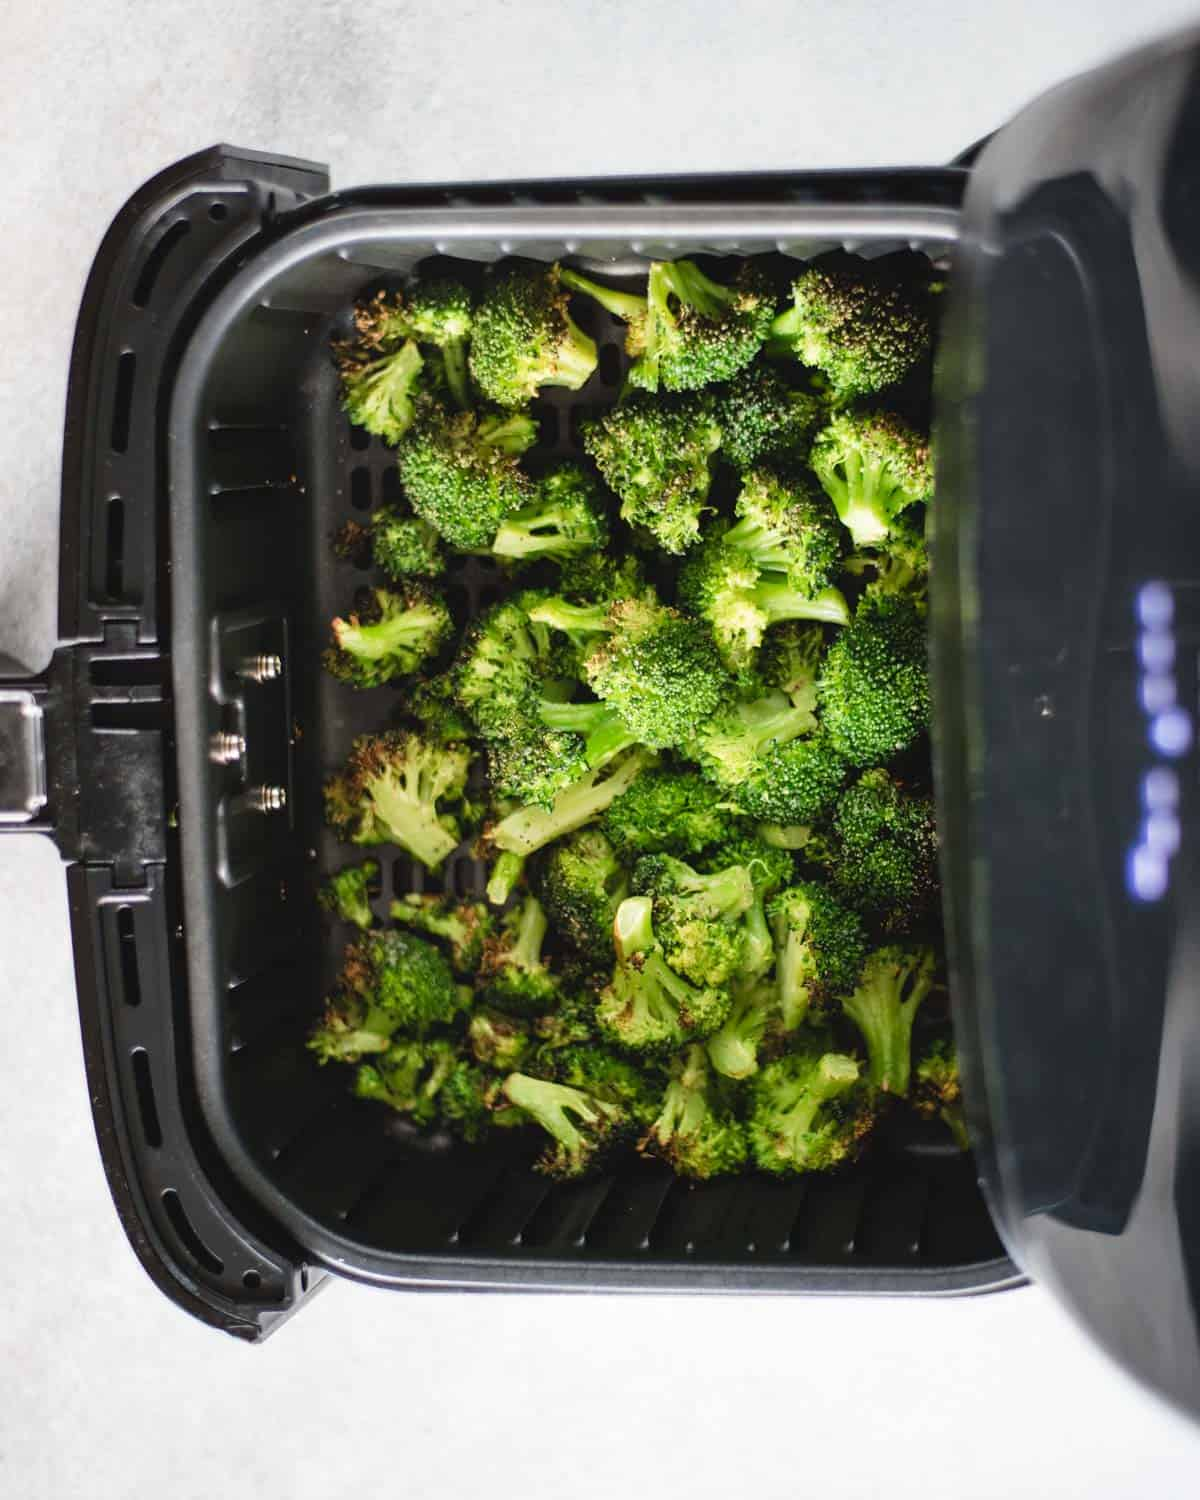 air fryer basket open showing cooked broccoli